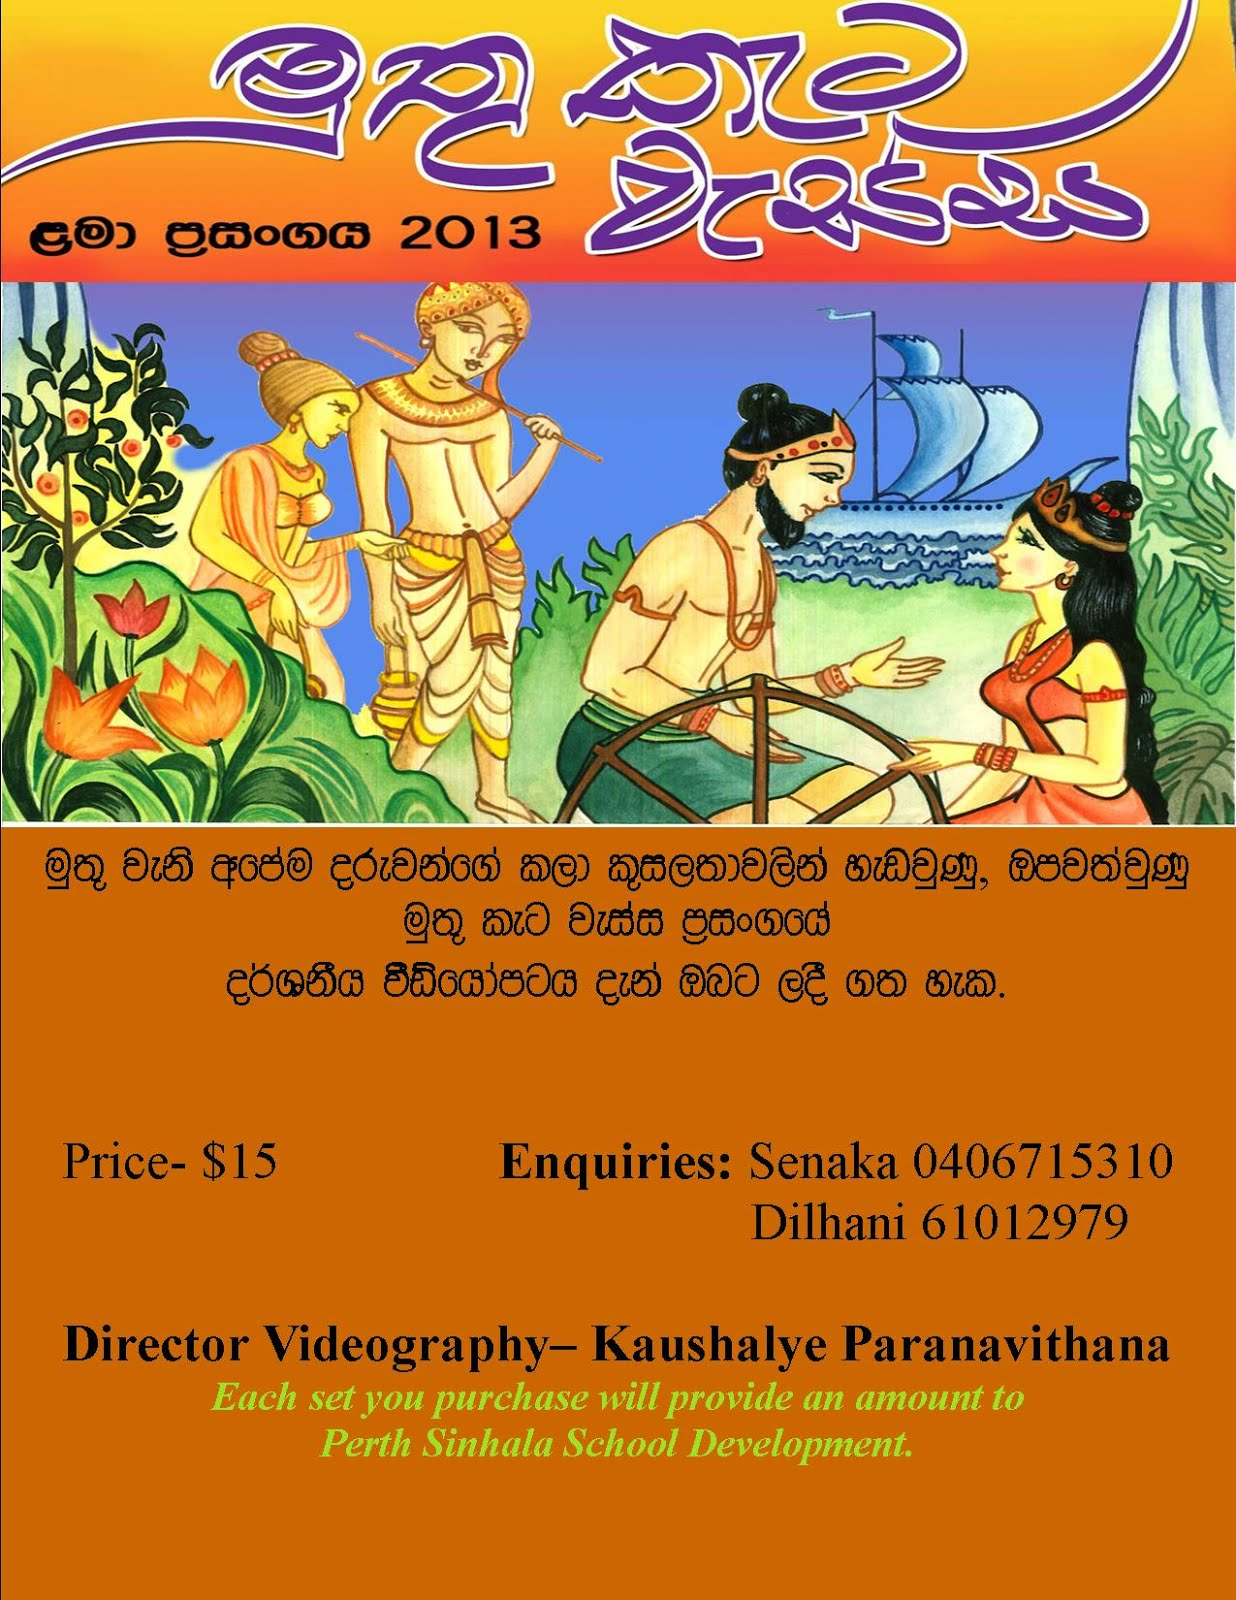 Perth Sinhala School News Blog New Year Wishes And Muthu